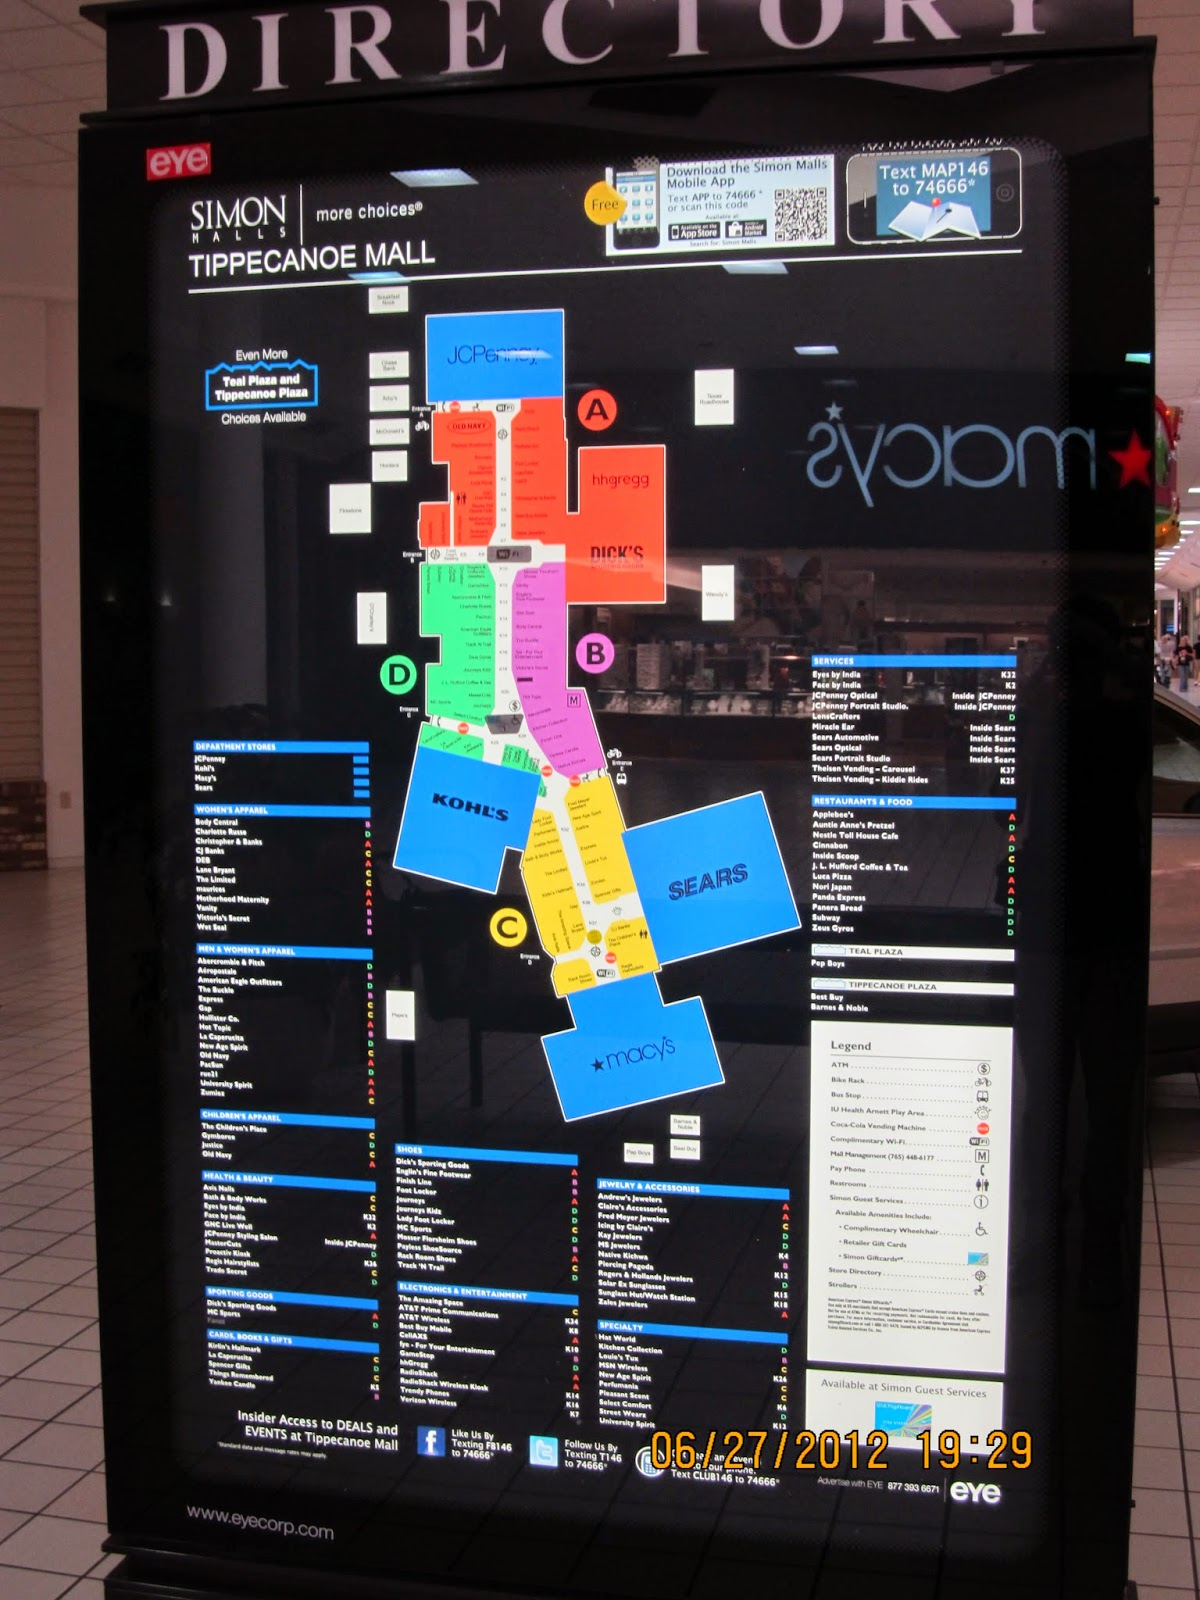 Orland Mall Map Orland Mall Map | compressportnederland Orland Mall Map